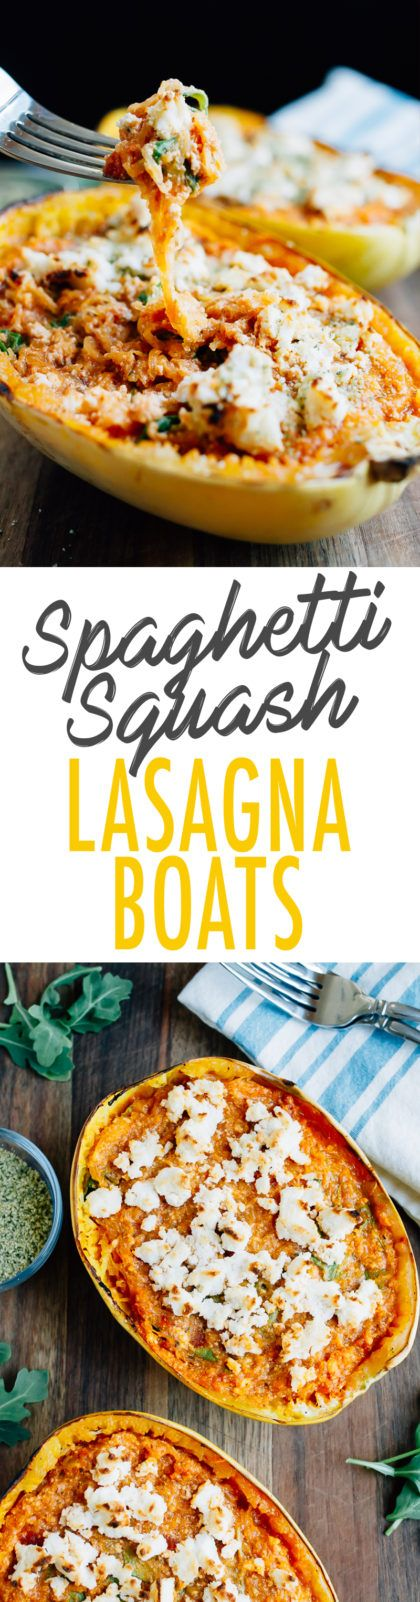 Turn spaghetti squash into a meatless meal with this recipe for stuffed SPAGHETTI SQUASH LASAGNA BOWLS. Made with vegan ricotta and hemp parmesan.